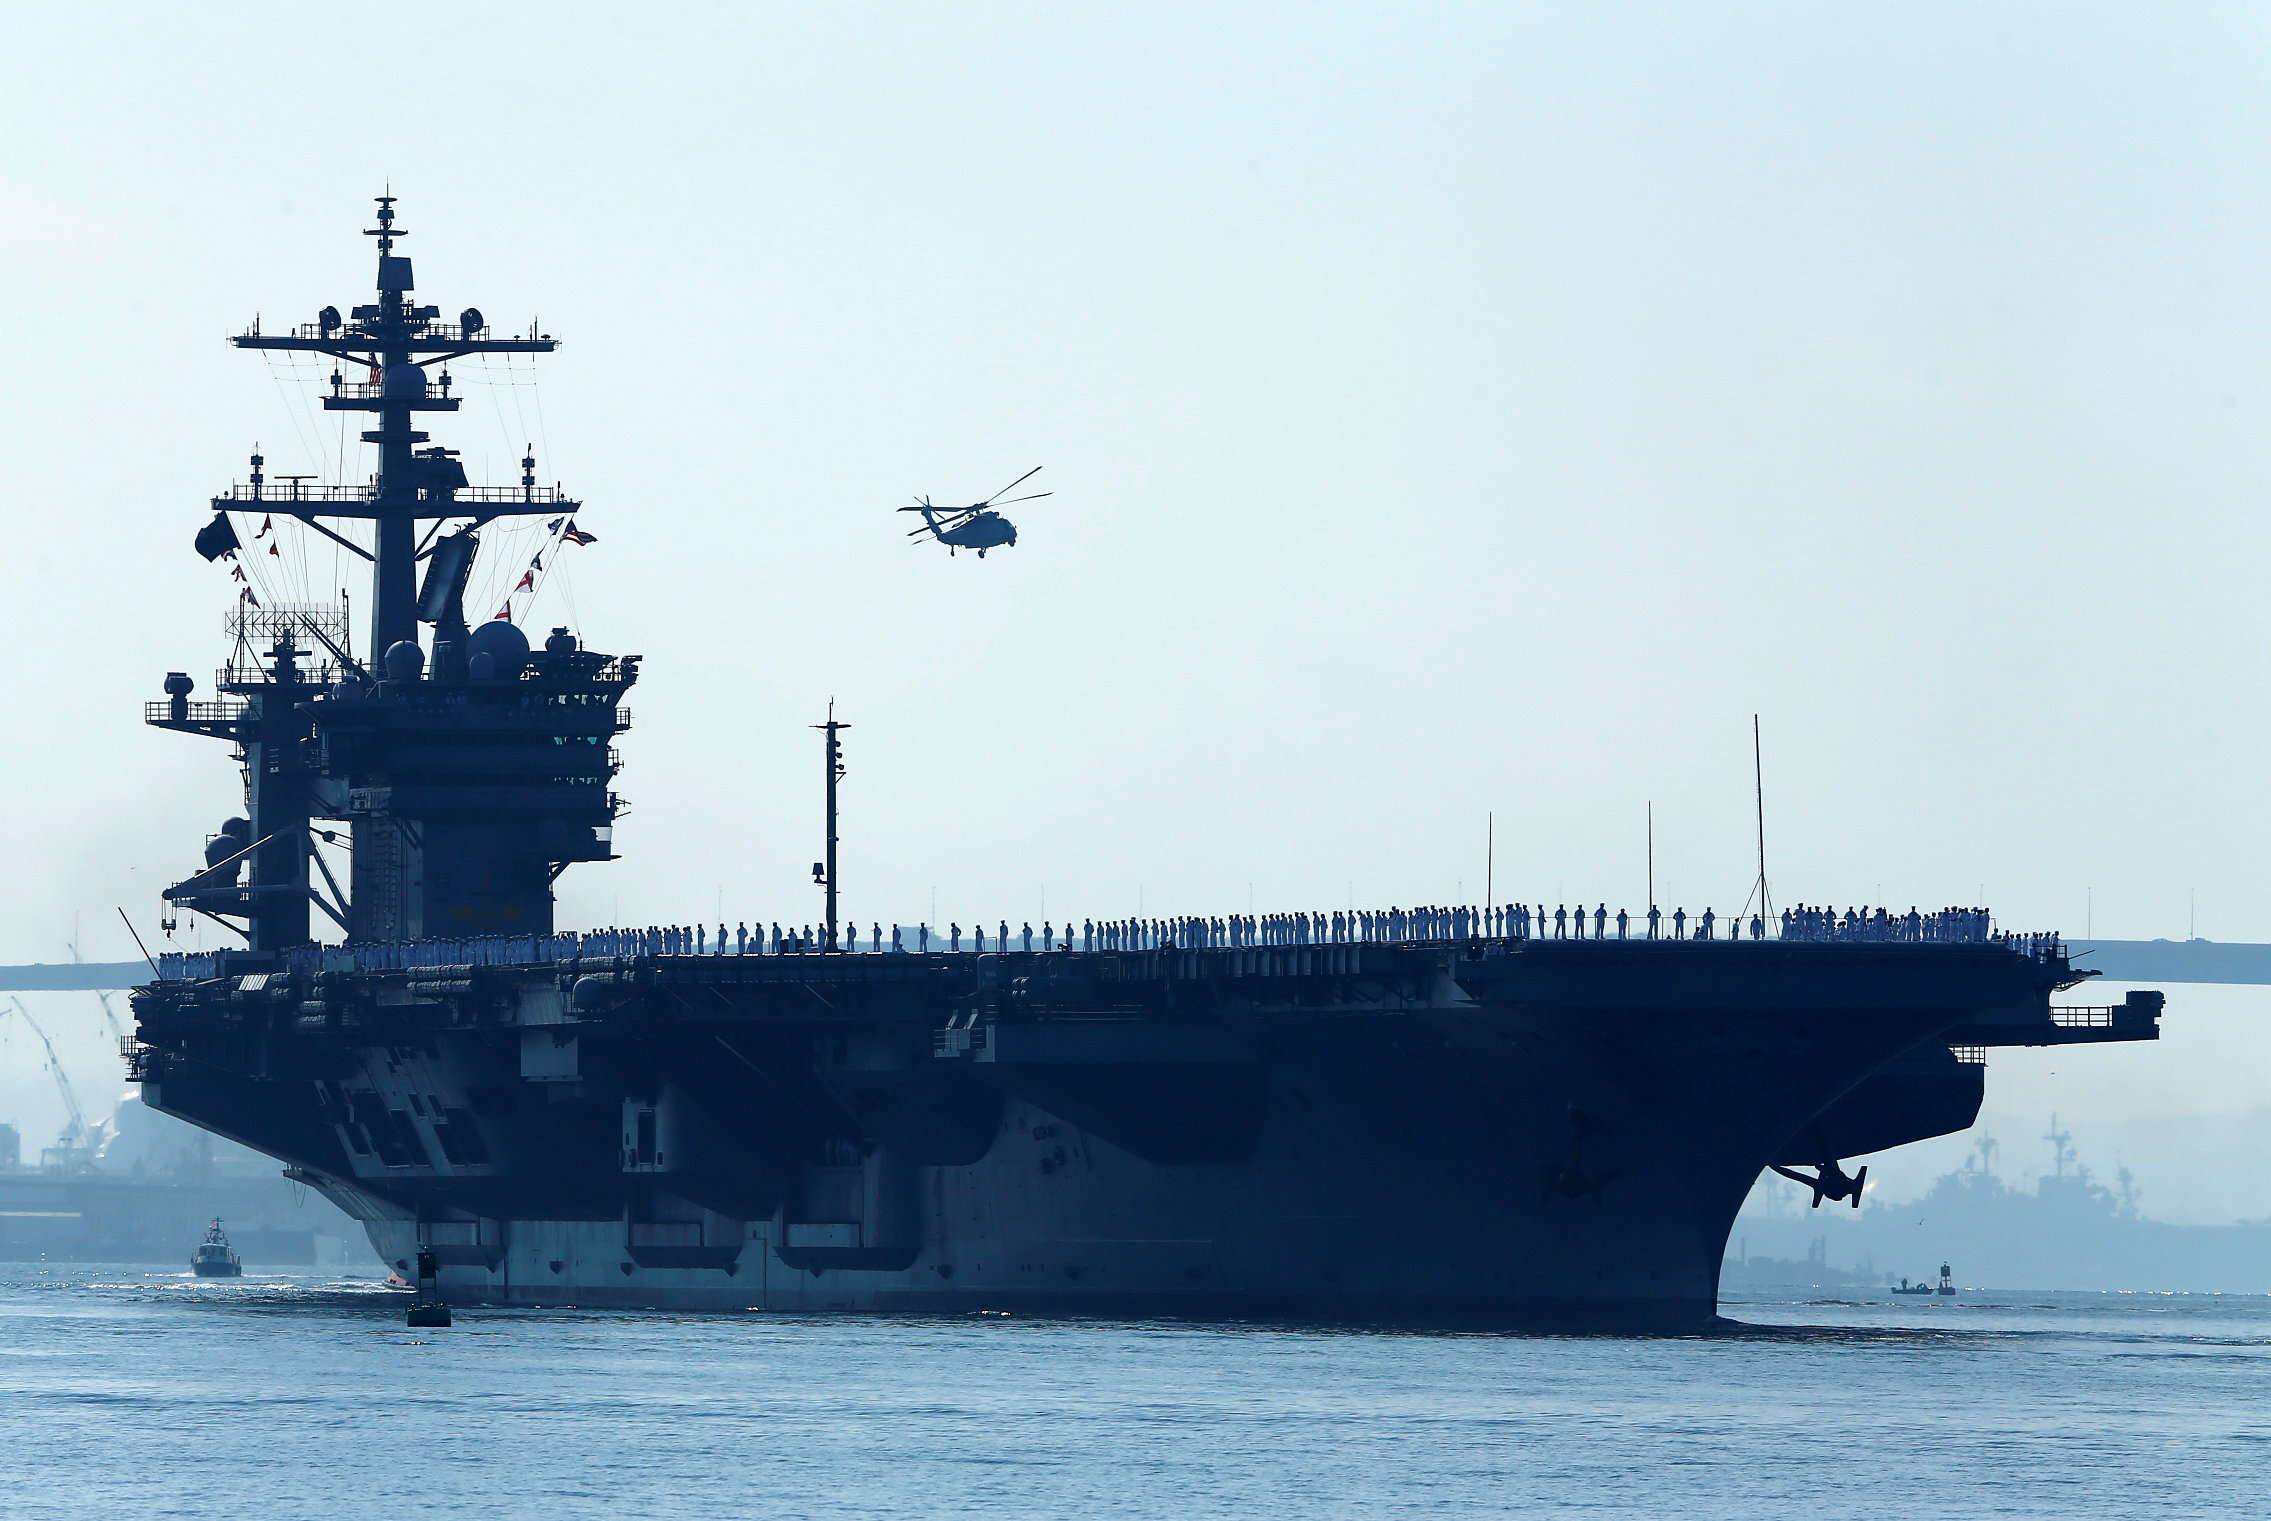 FILE PHOTO - Sailors man the rails of the USS Carl Vinson, a Nimitz-class aircraft carrier, as it departs its home port in San Diego, California August 22, 2014.